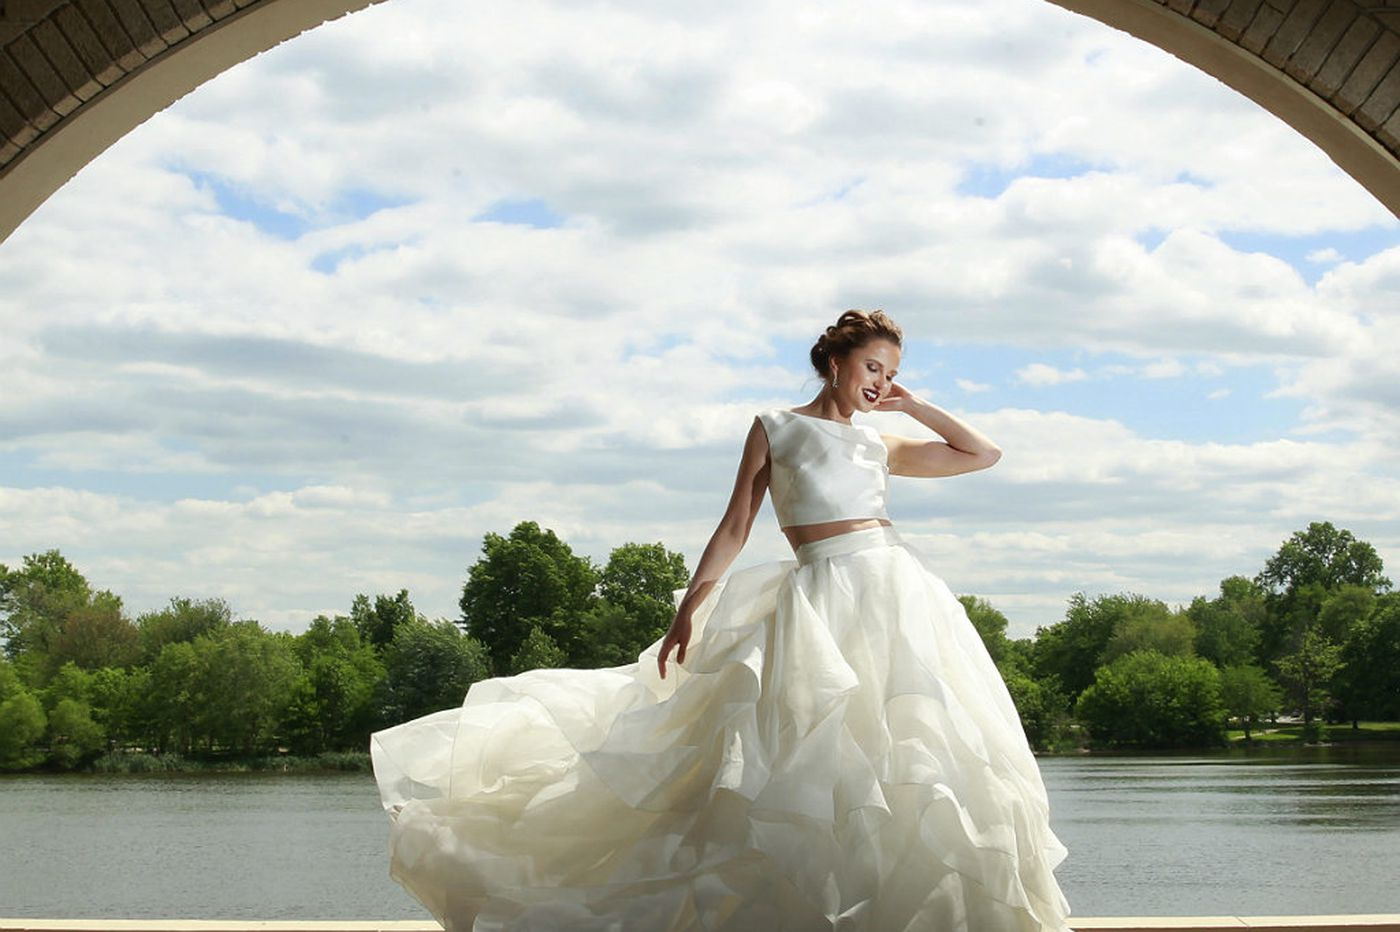 David's Bridal takes a hit from rating agency, casting doubt on its reinvention effort